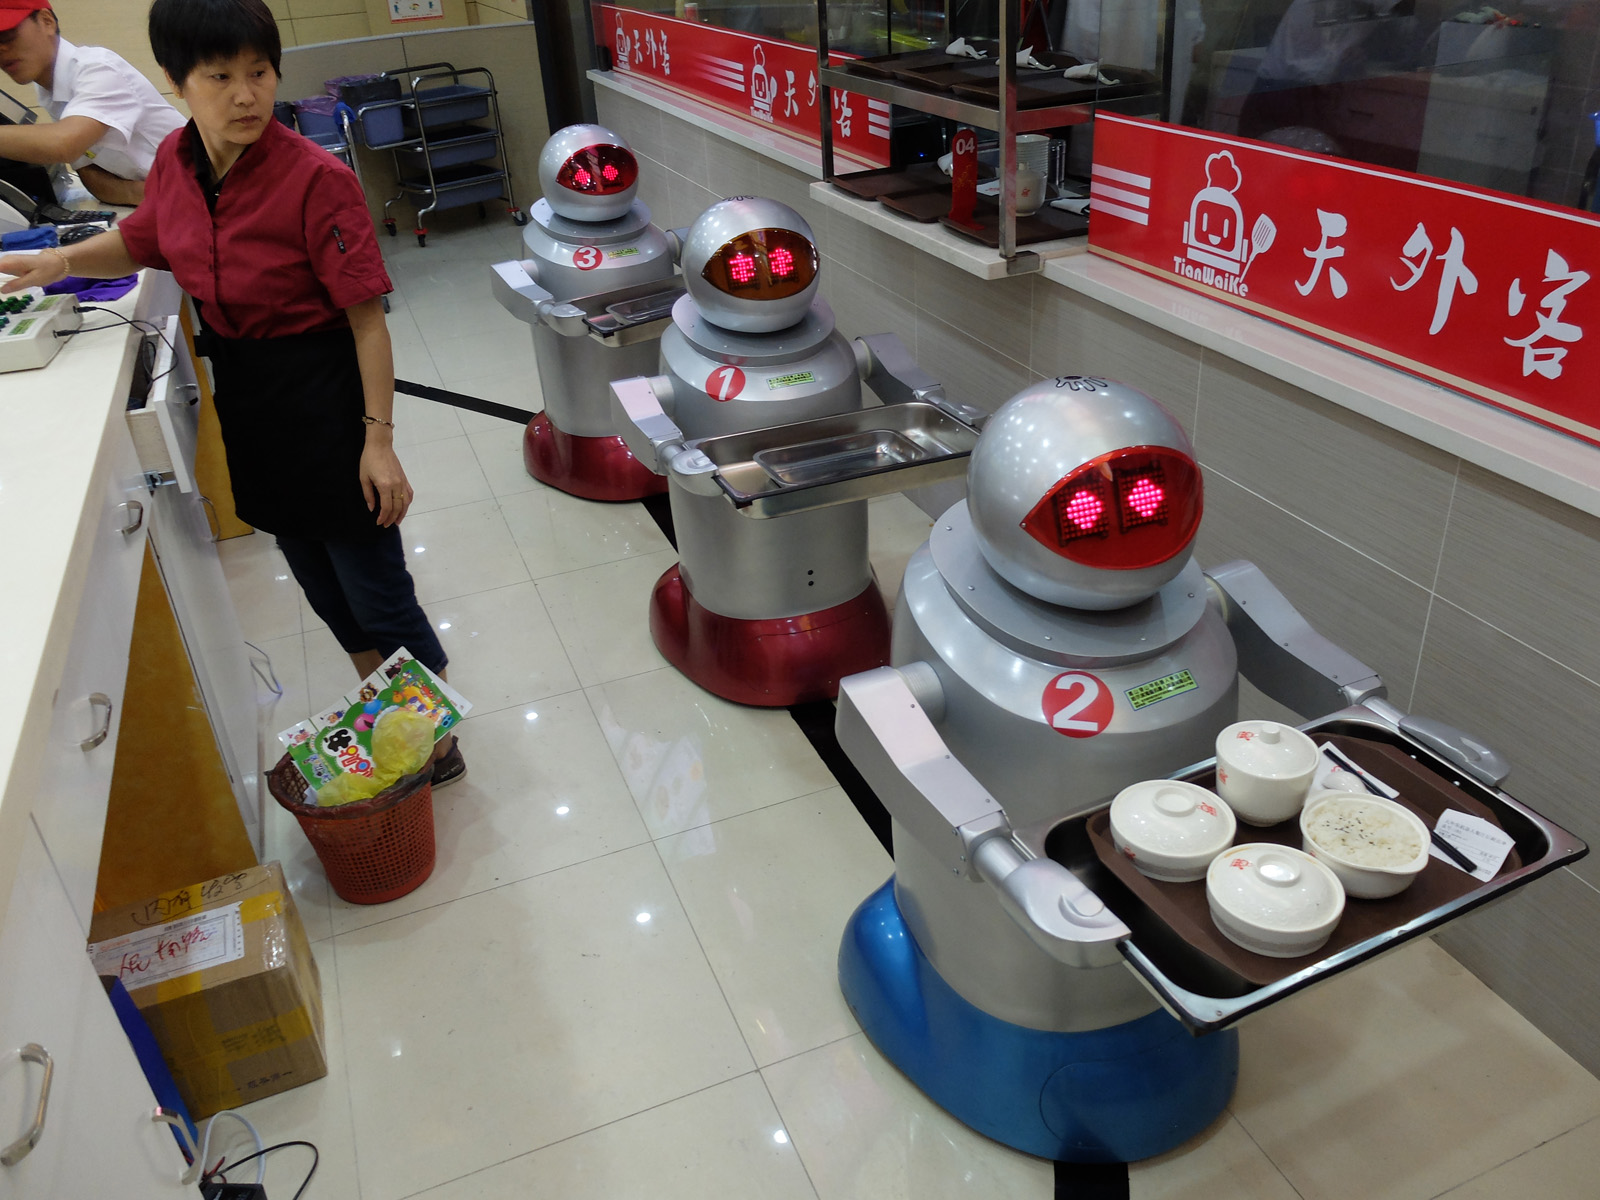 Three robots behind the counter